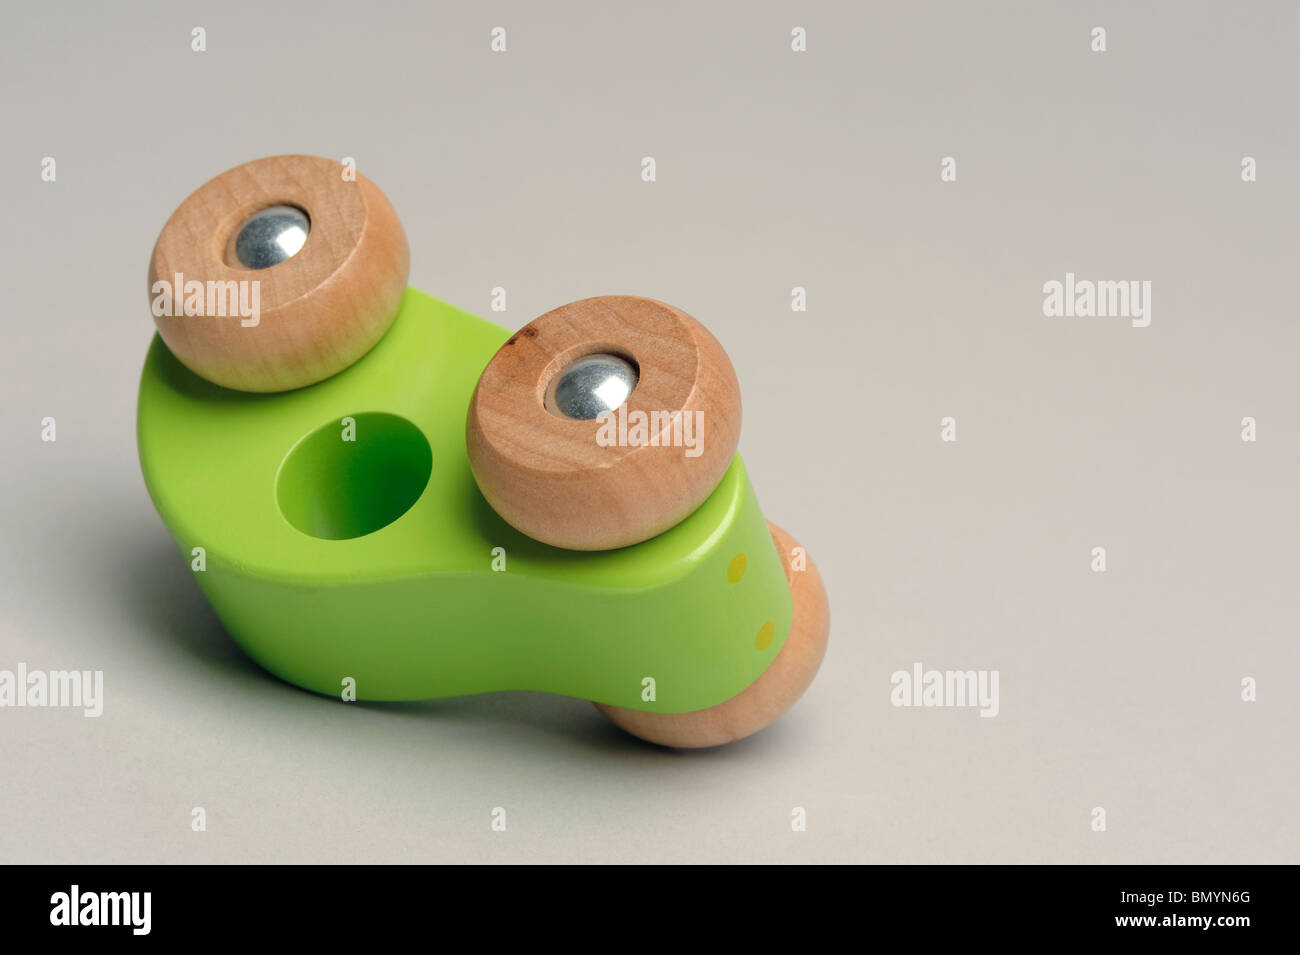 Toy wooden car upside down - Stock Image